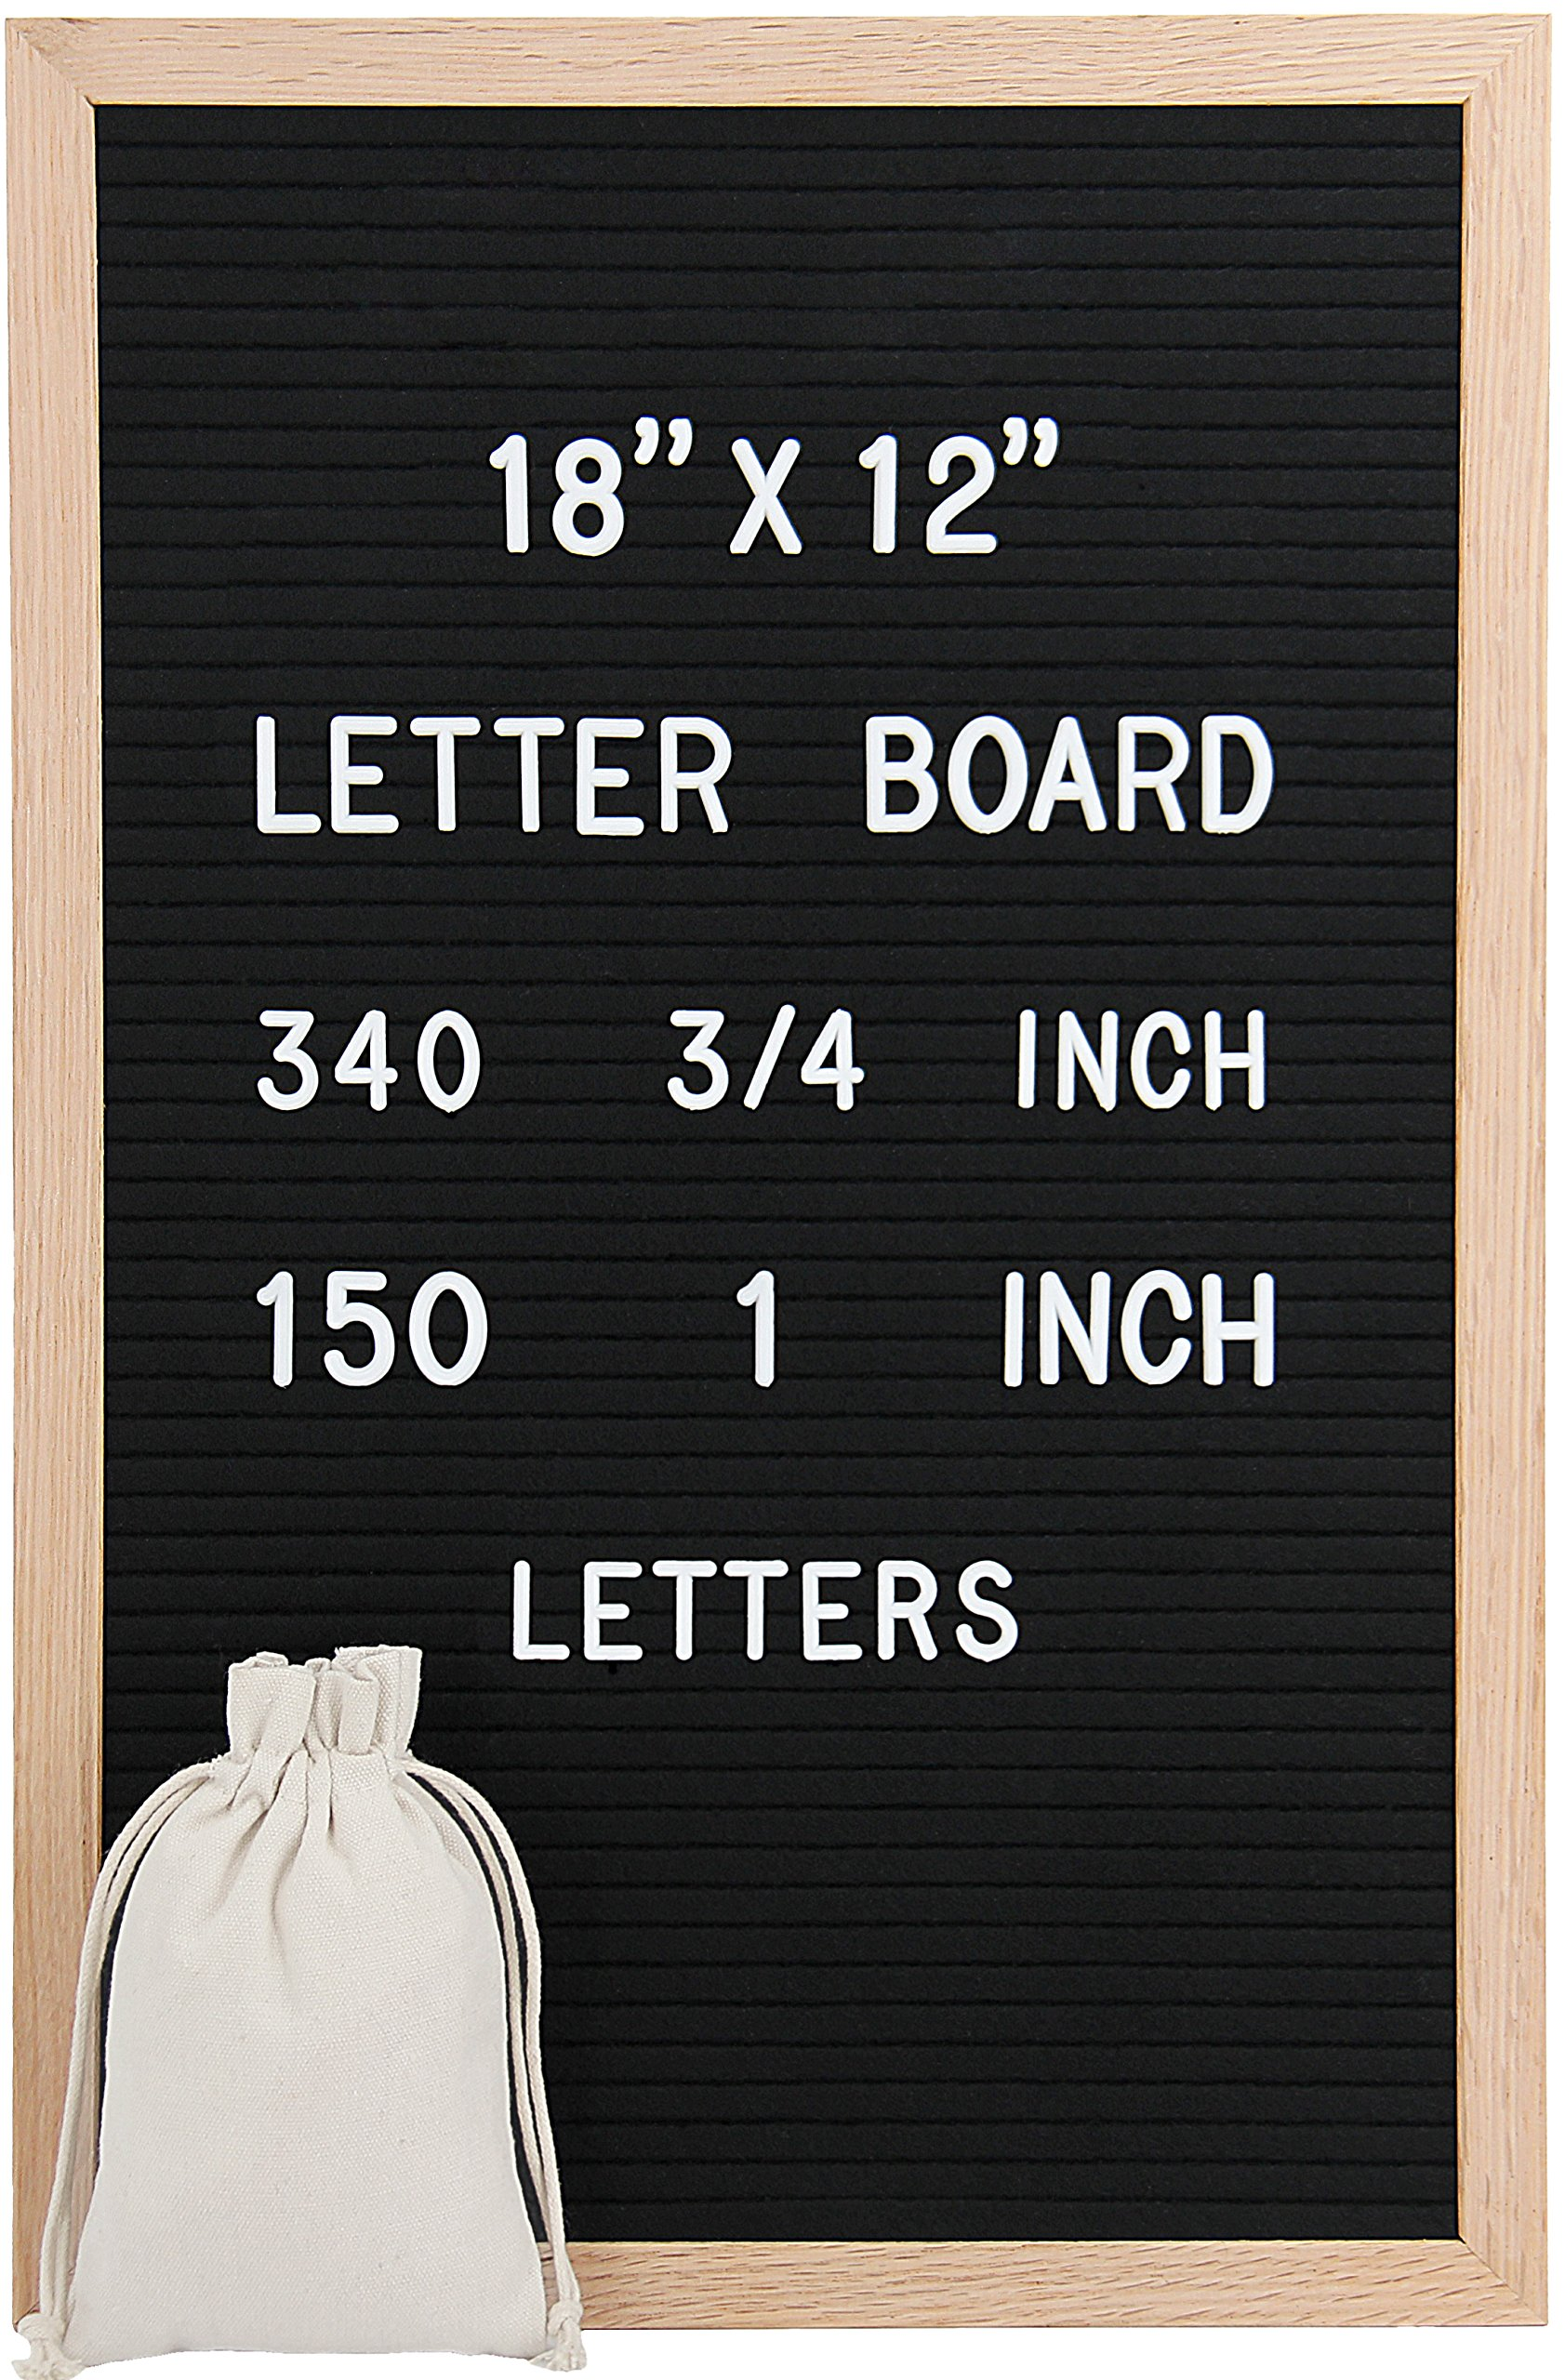 18 x 12 Inch Felt Letter Board - Changeable Letter Board, Black Felt Boards with 490 (340 3/4'' and 150 1'') Letters and Characters, Imported Oak Wooden Frame, Mounting Hook, Letter Storage Bag R001